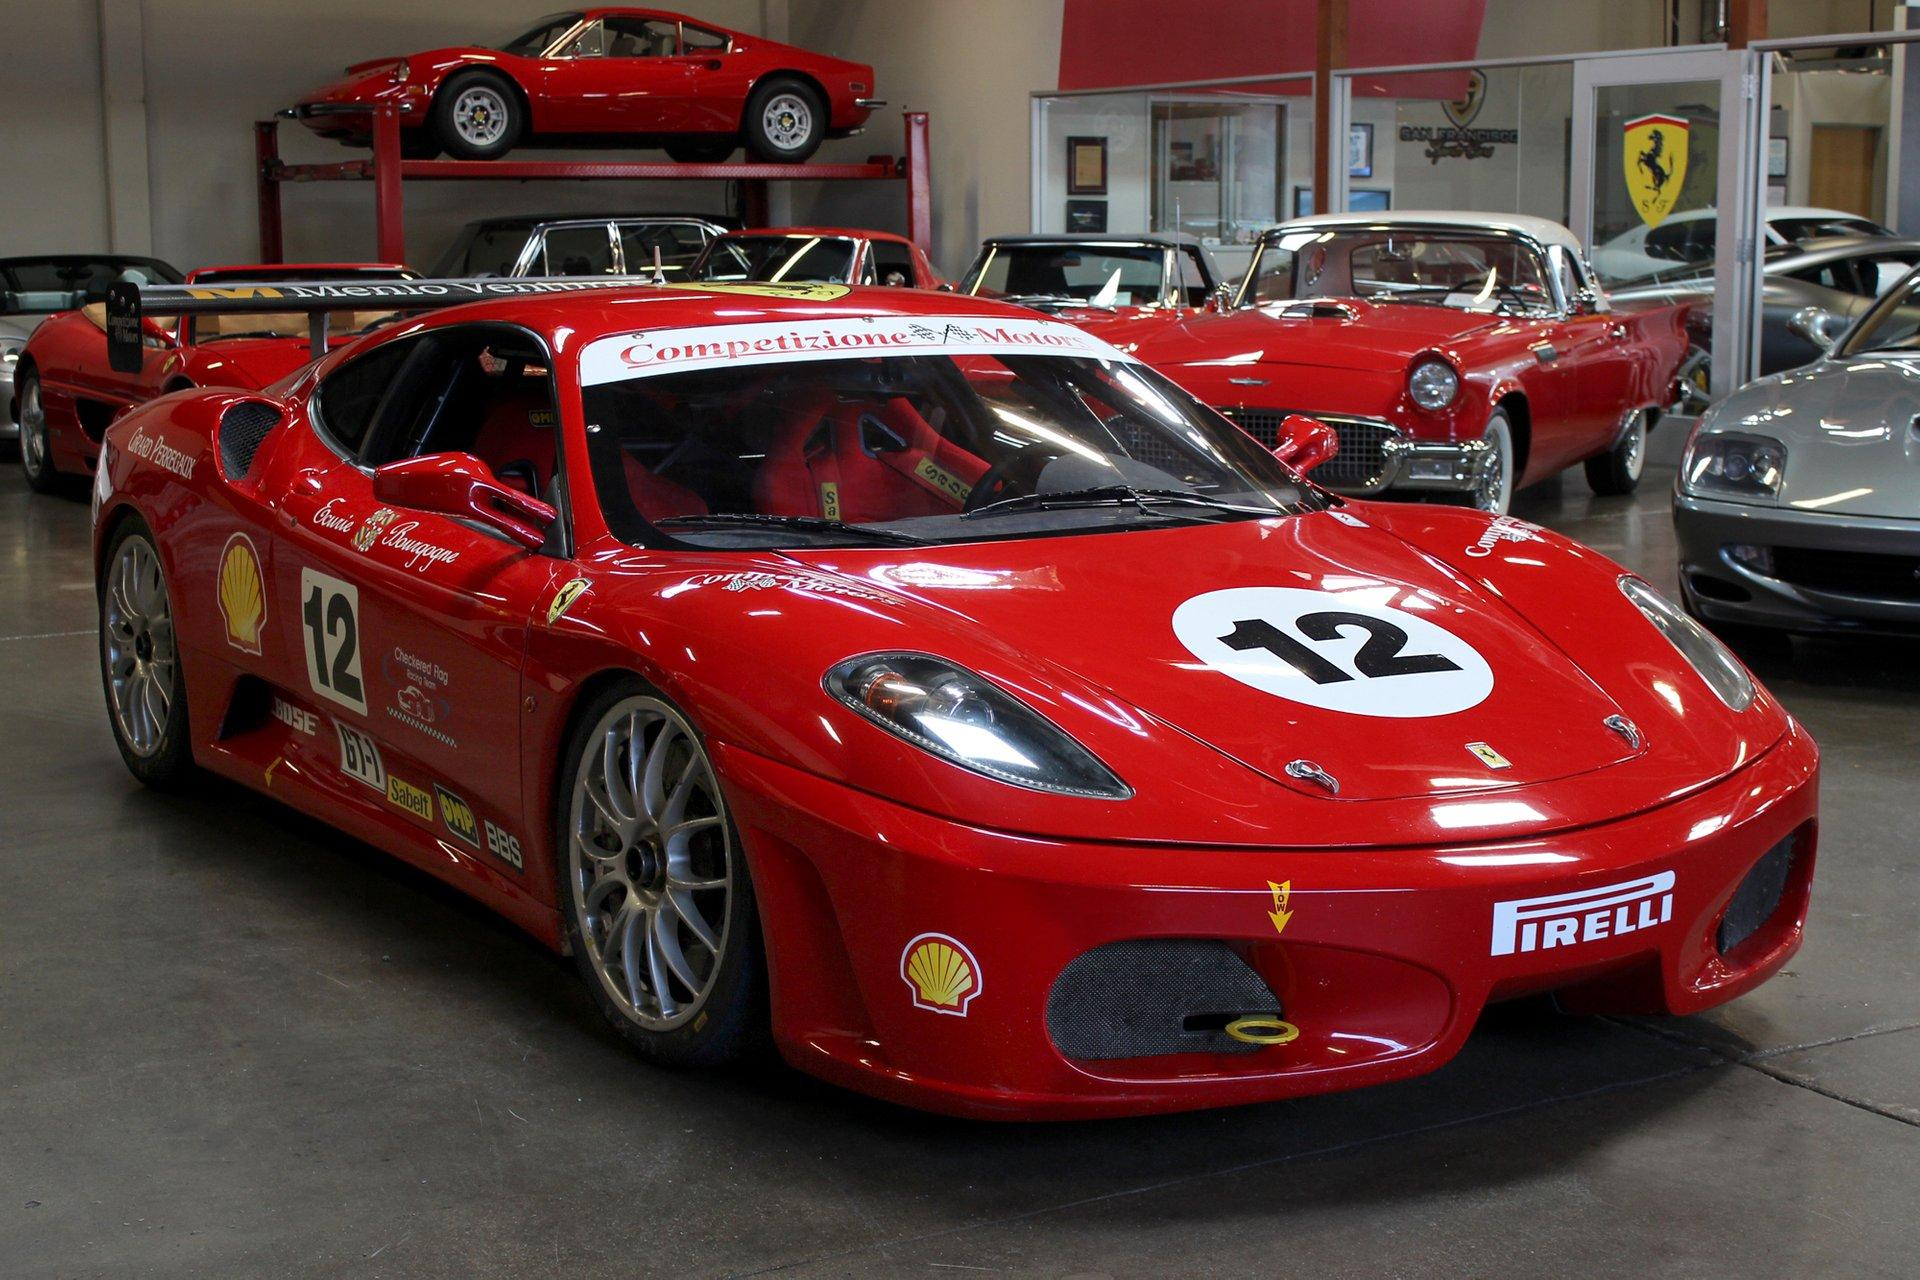 Used 2006 Ferrari F430 Challenge For Sale Special Pricing San Francisco Sports Cars Stock C18007